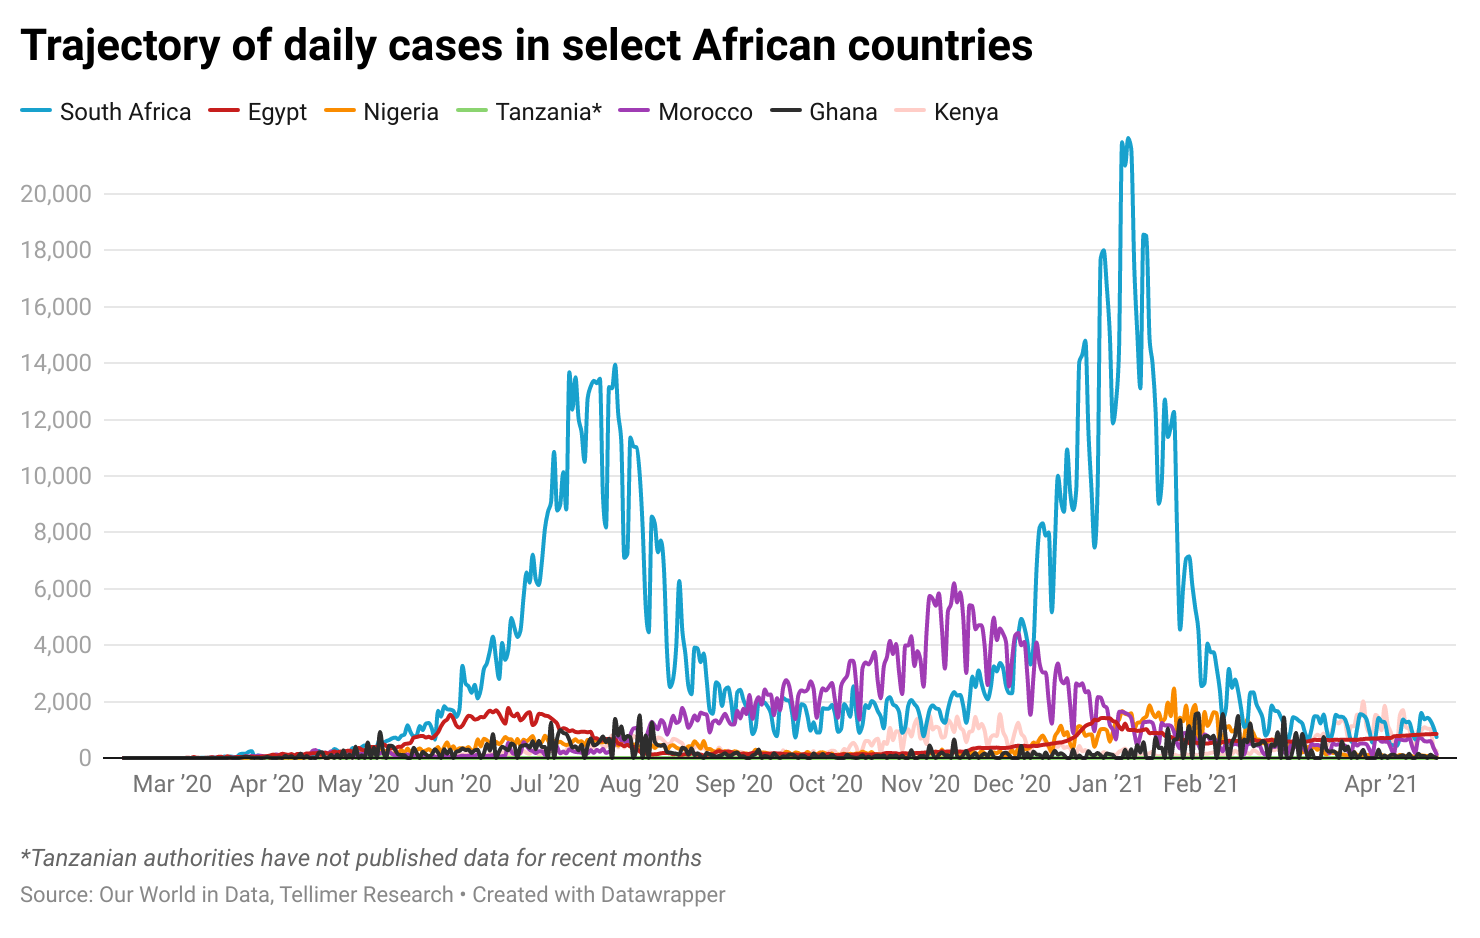 Trajectory of daily cases in select African countries